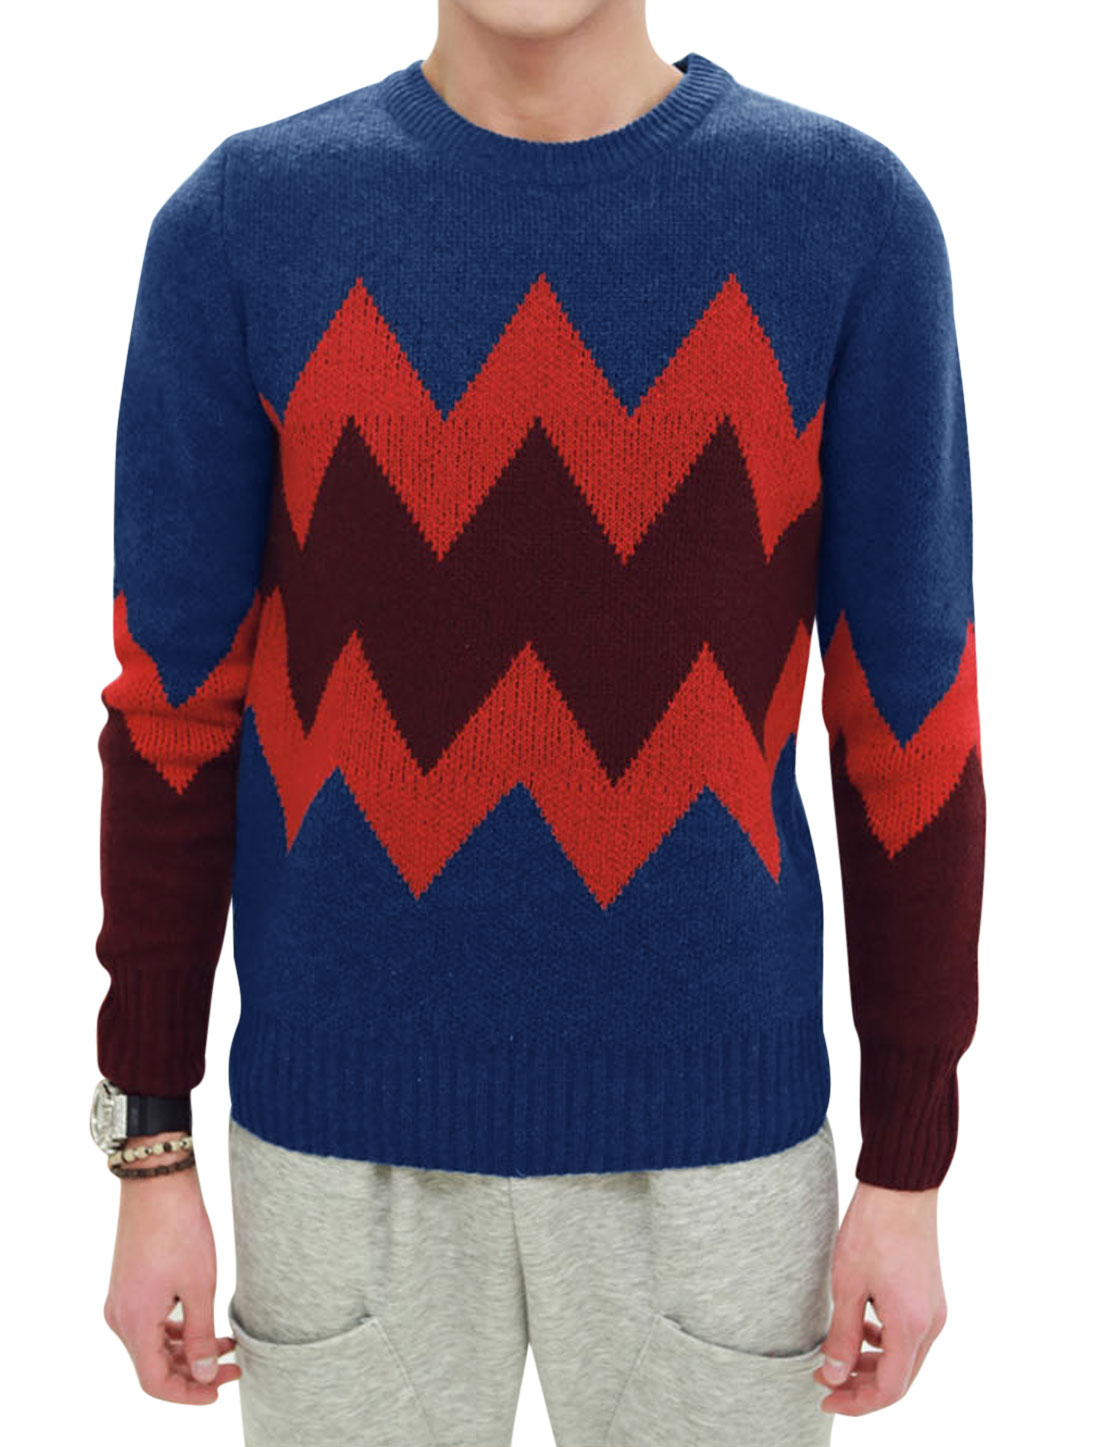 Zig-zag Pattern Long Sleeves Pullover Blue Sweater for Men M